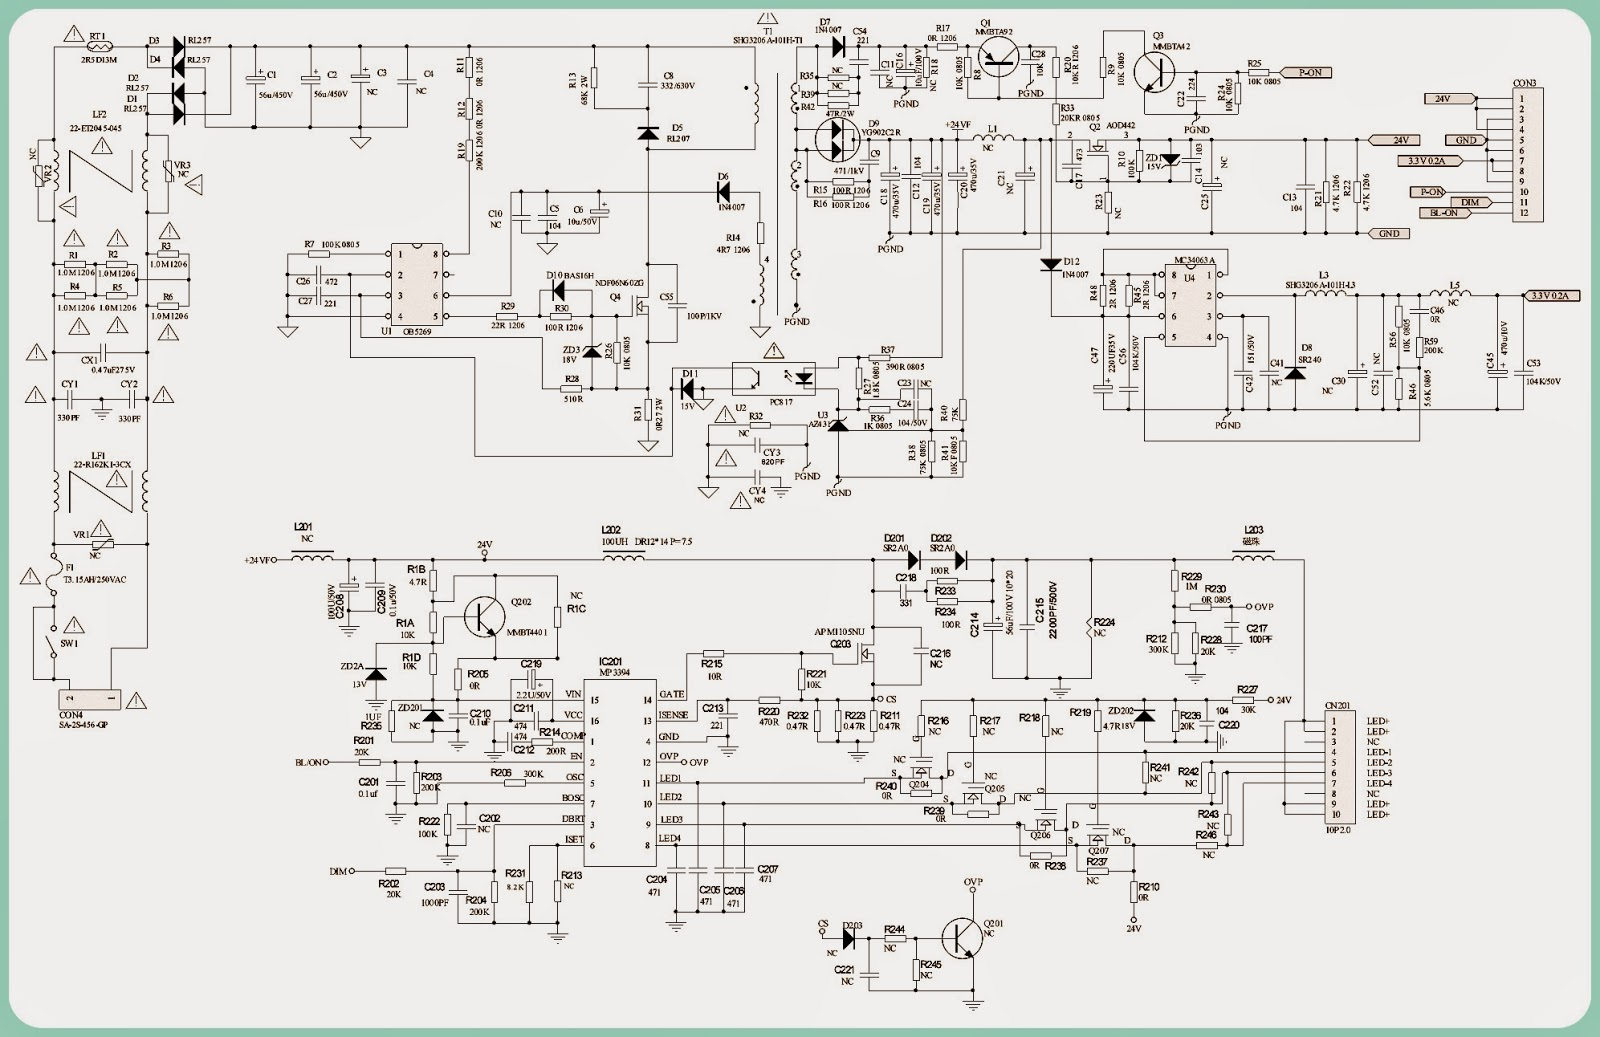 Beautiful 55 samsung tv wiring diagram pictures inspiration unusual samsung tv wiring diagram pictures inspiration swarovskicordoba Image collections